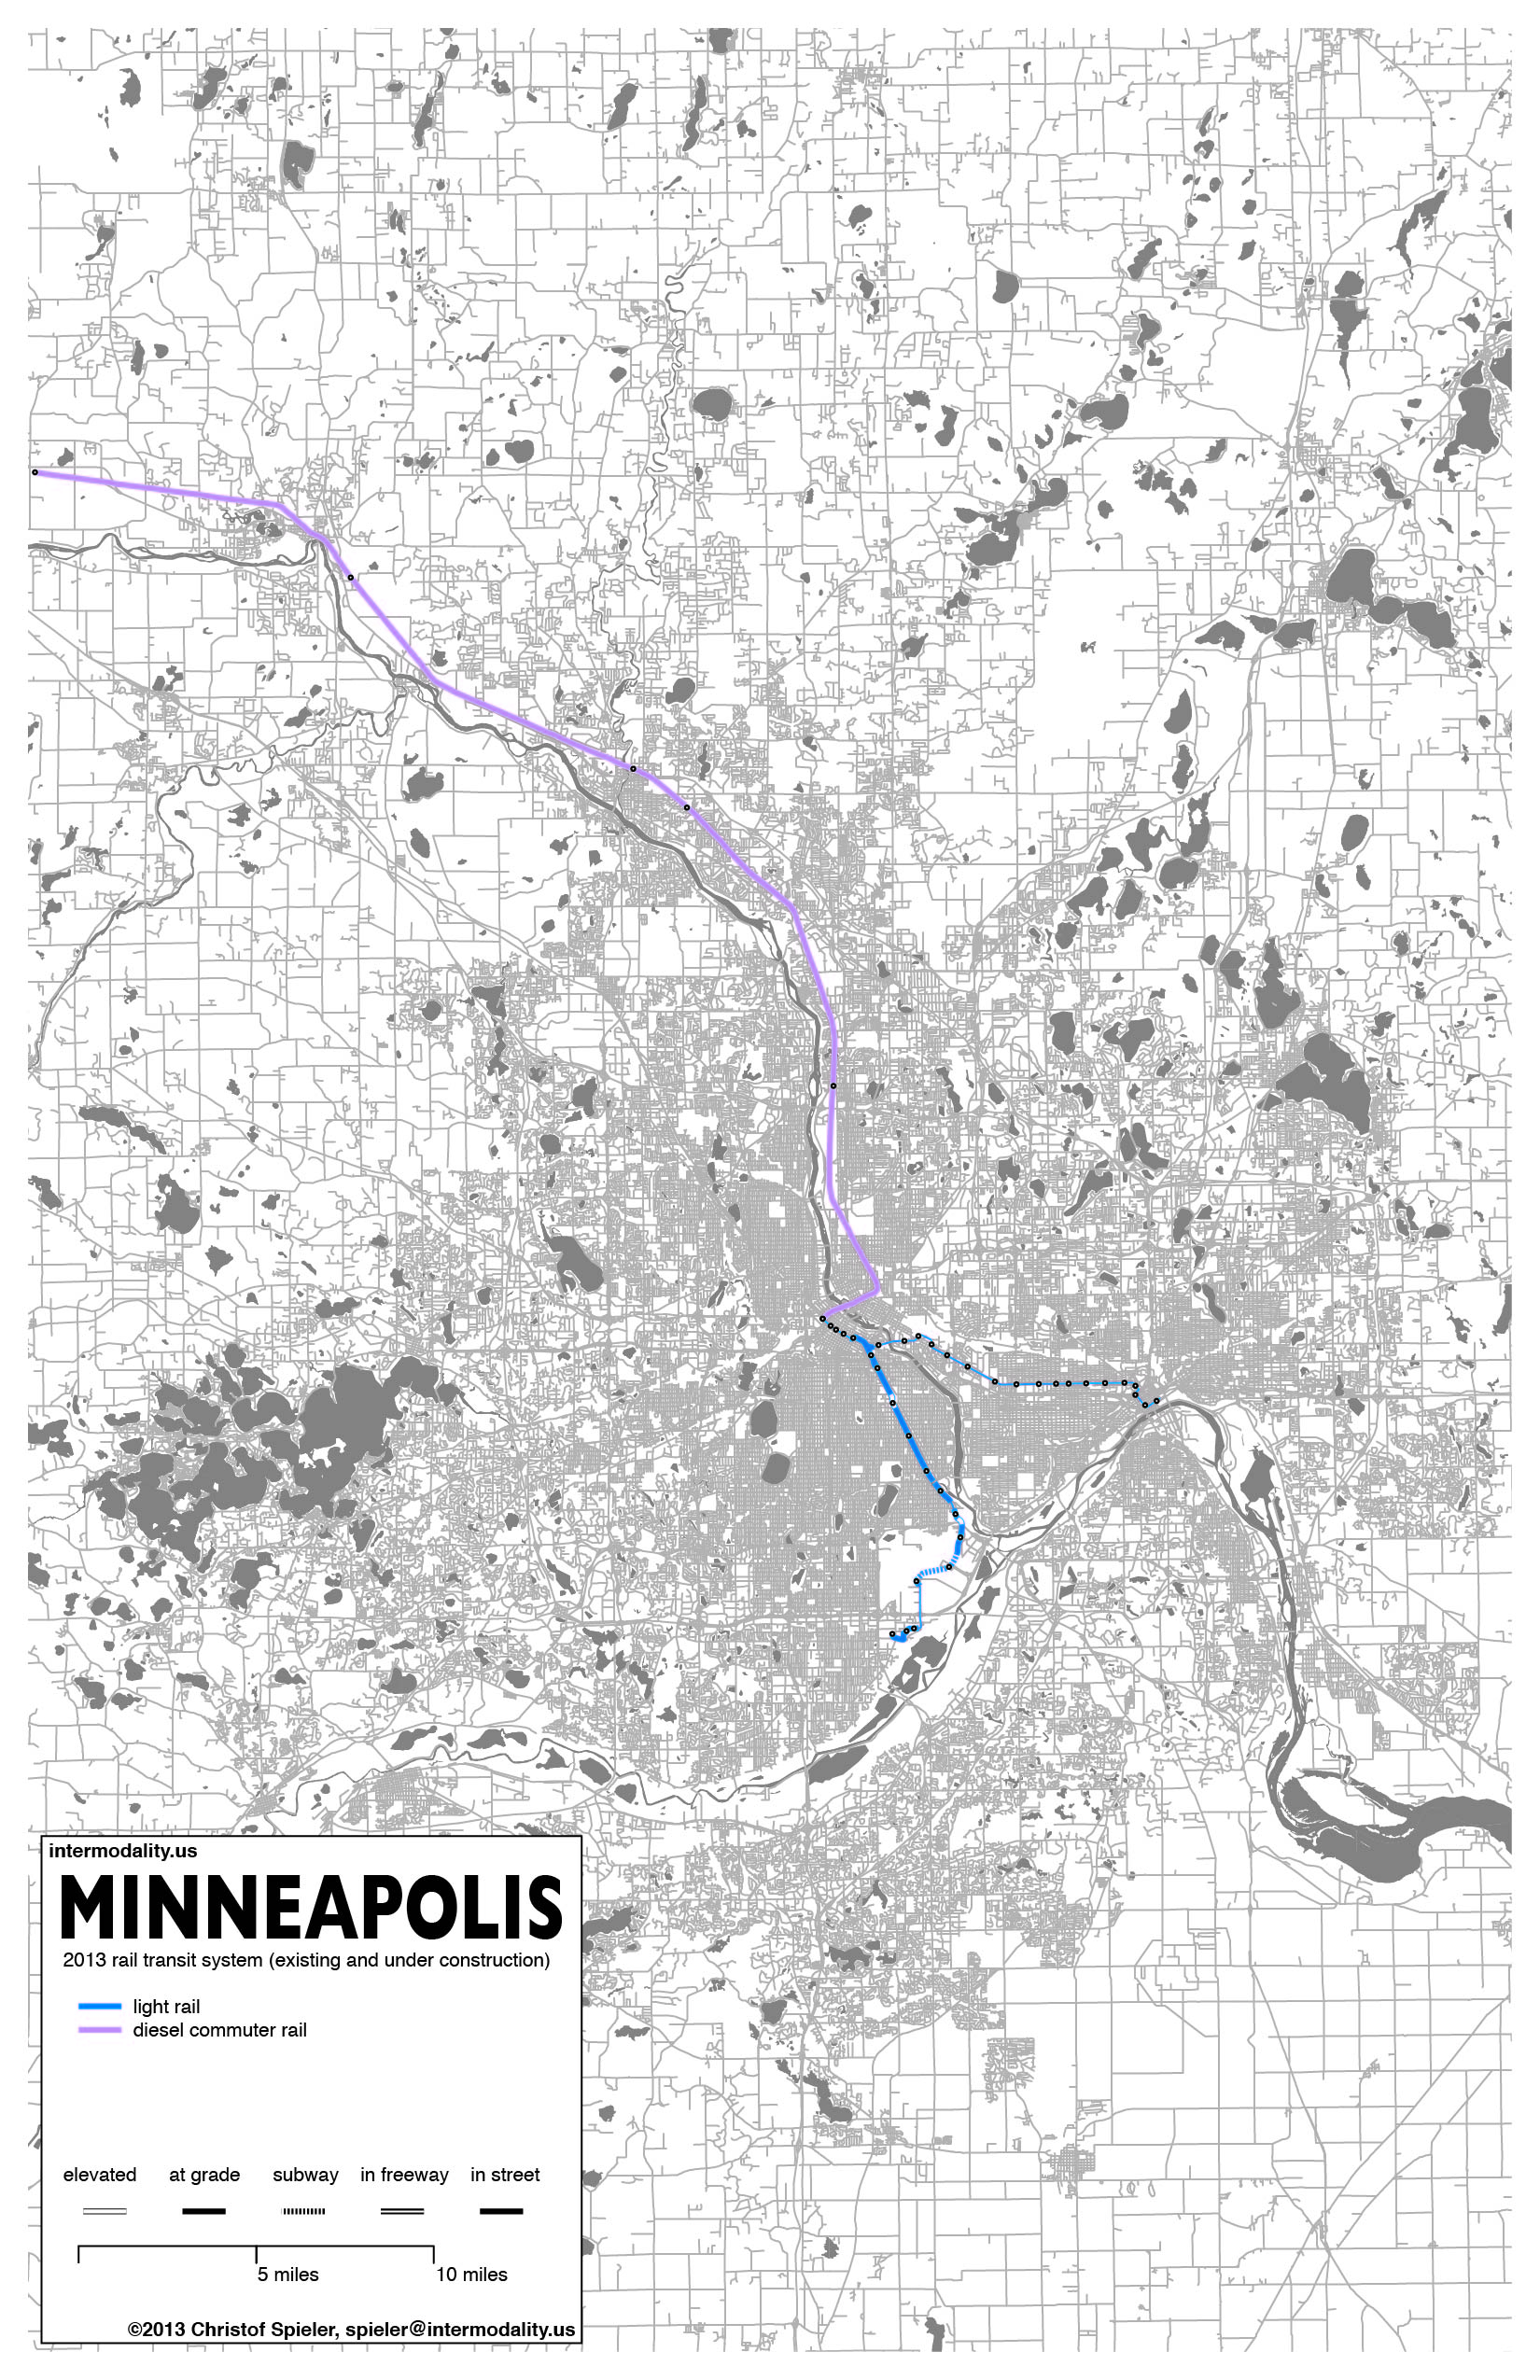 minneapolis final-01